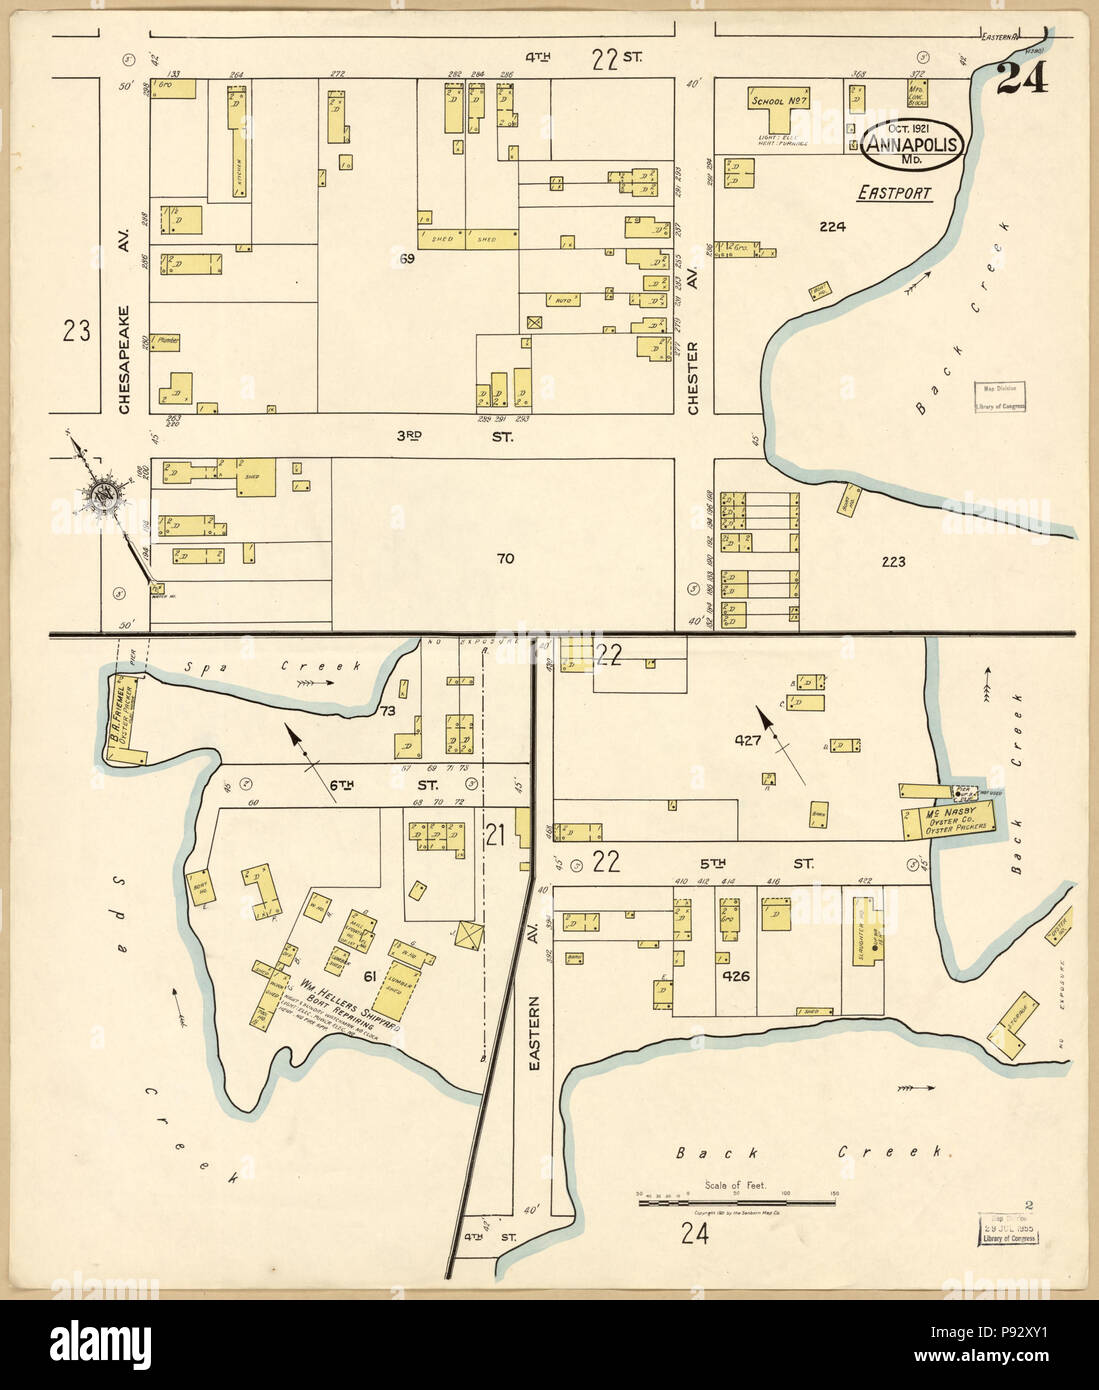 491 Sanborn Fire Insurance Map from Annapolis, Anne Arundel ... on map of marion county, map of clarke county, map of st mary's county, map of rappahannock county, map of aa county, map of harford county, map of jackson county, map of kings county, map of calvert county, map of clark county, map of duval county, map of laurel county, map of baltimore county public schools, map of baltimore county md, map of garrett county, map of talbot county, map of preston county, map of caroline county, map of prince george's county, map of howard county md,